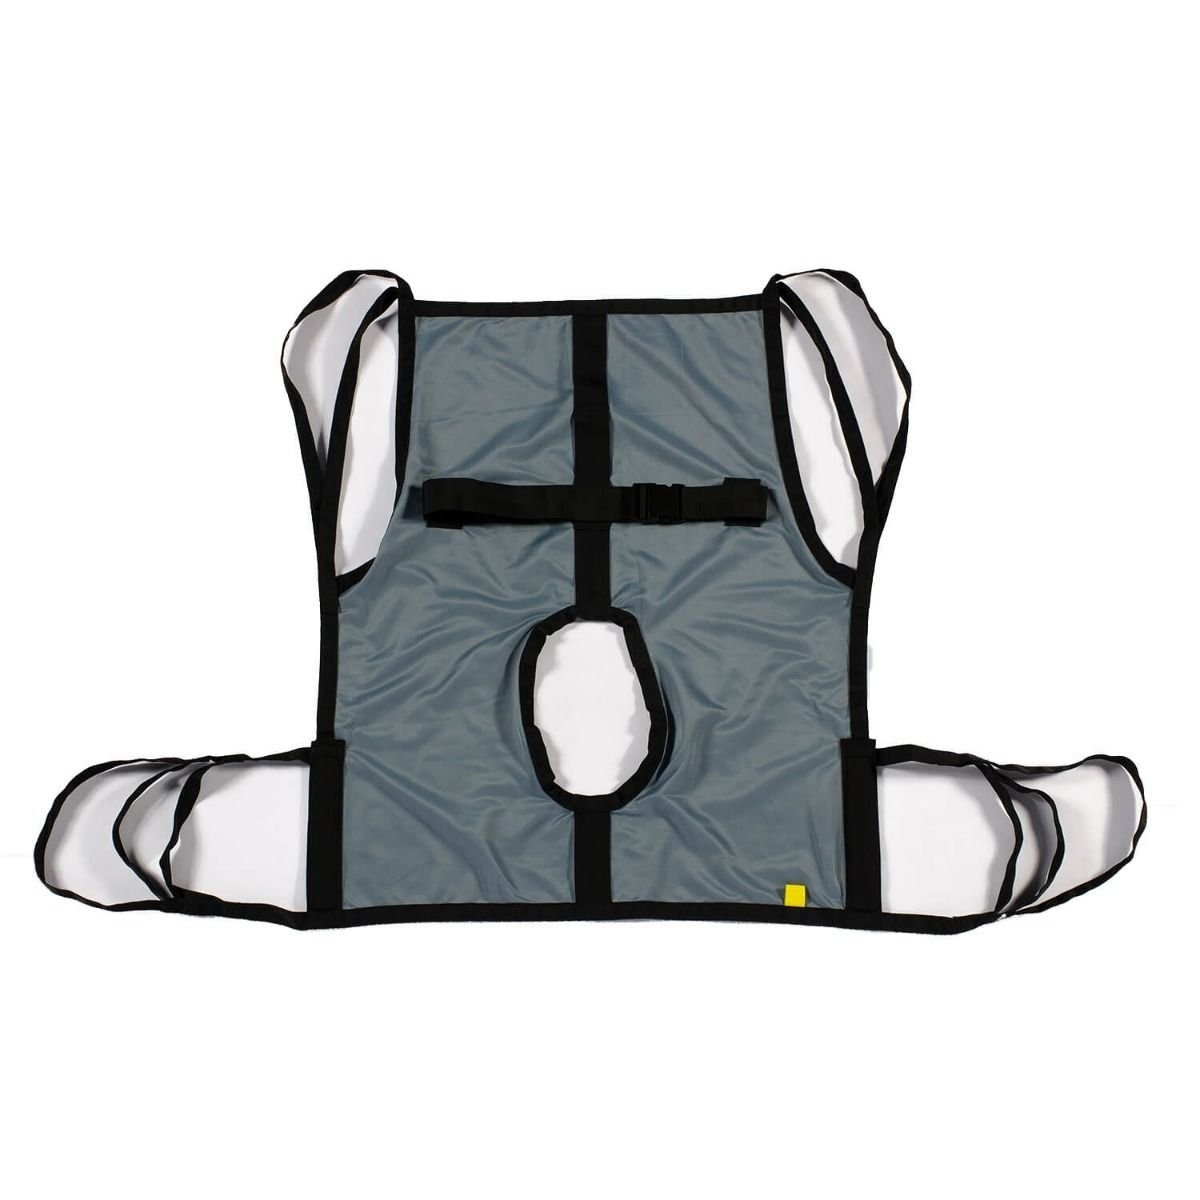 One Piece Commode Patient Lift Sling with Positioning Strap, Full Body 600lb Capacity (Small)